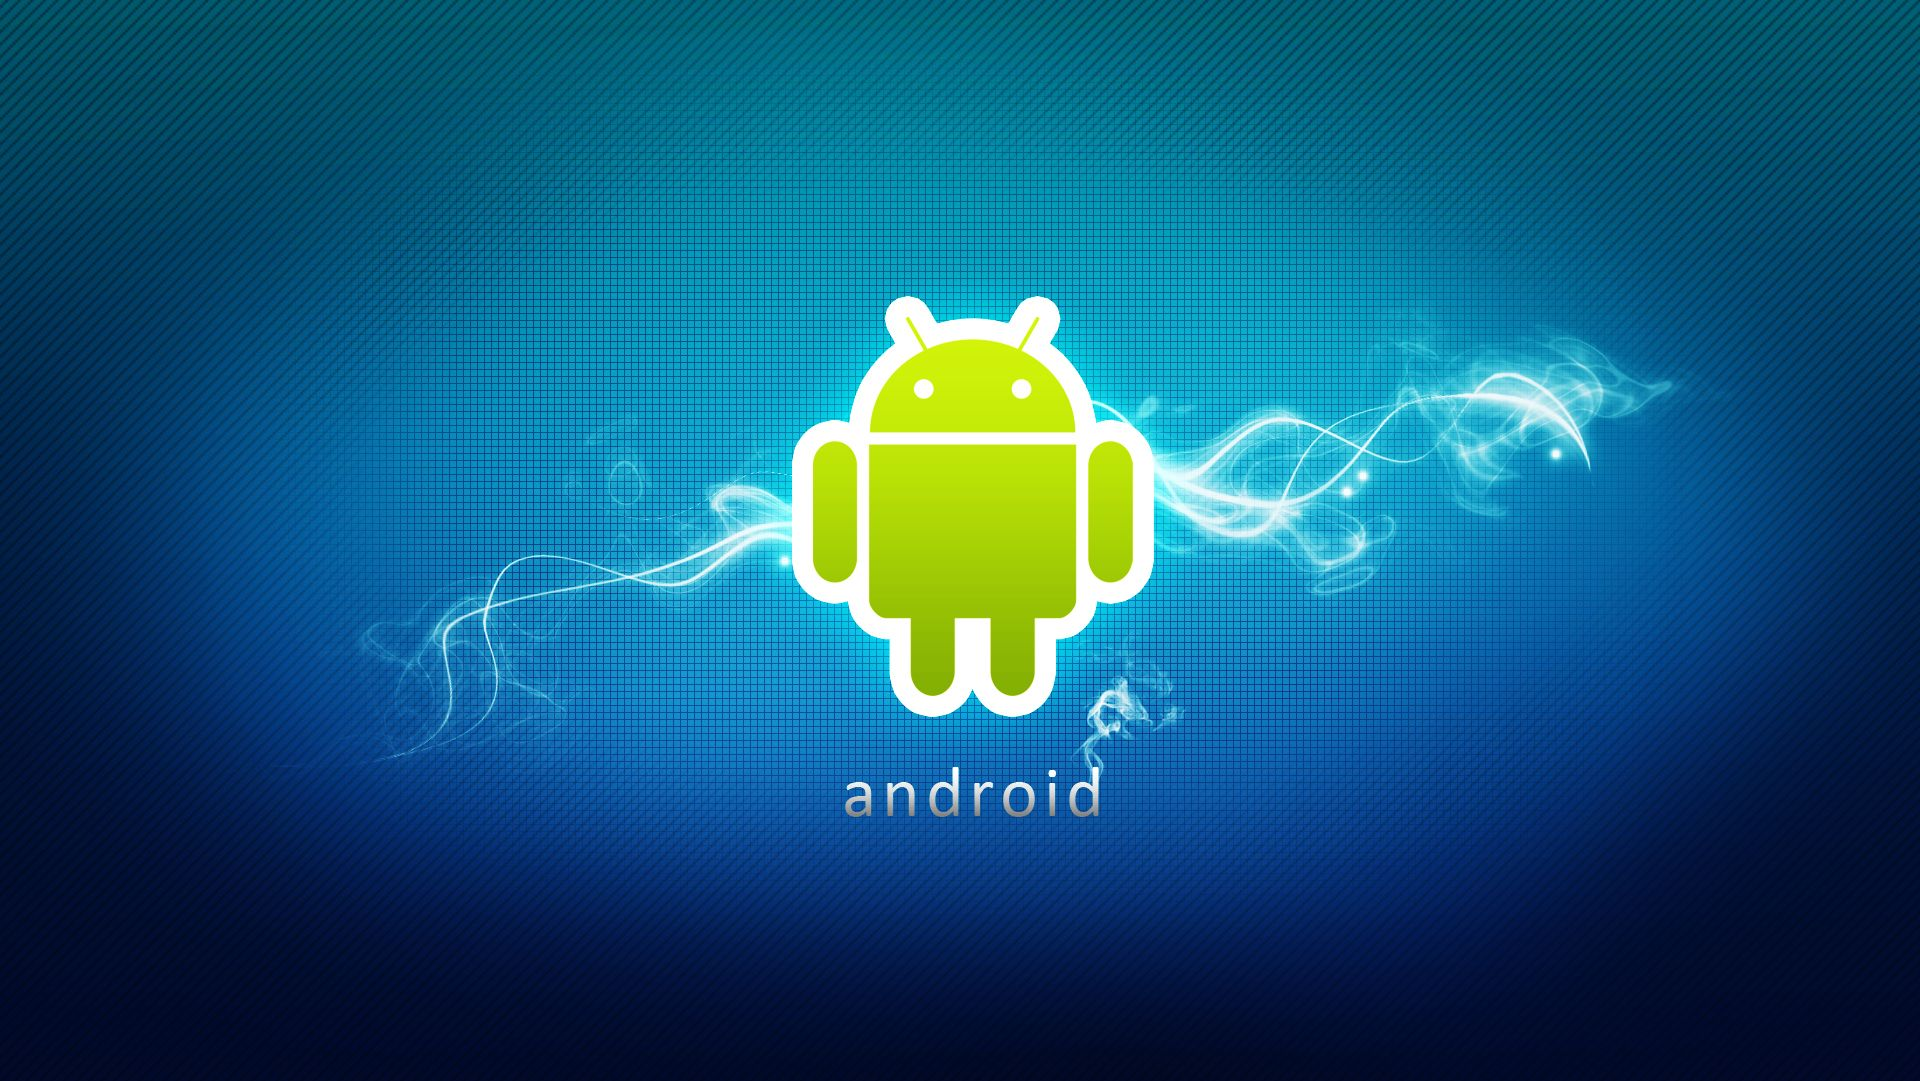 Android Logo Wallpapers Top Free Android Logo Backgrounds Wallpaperaccess